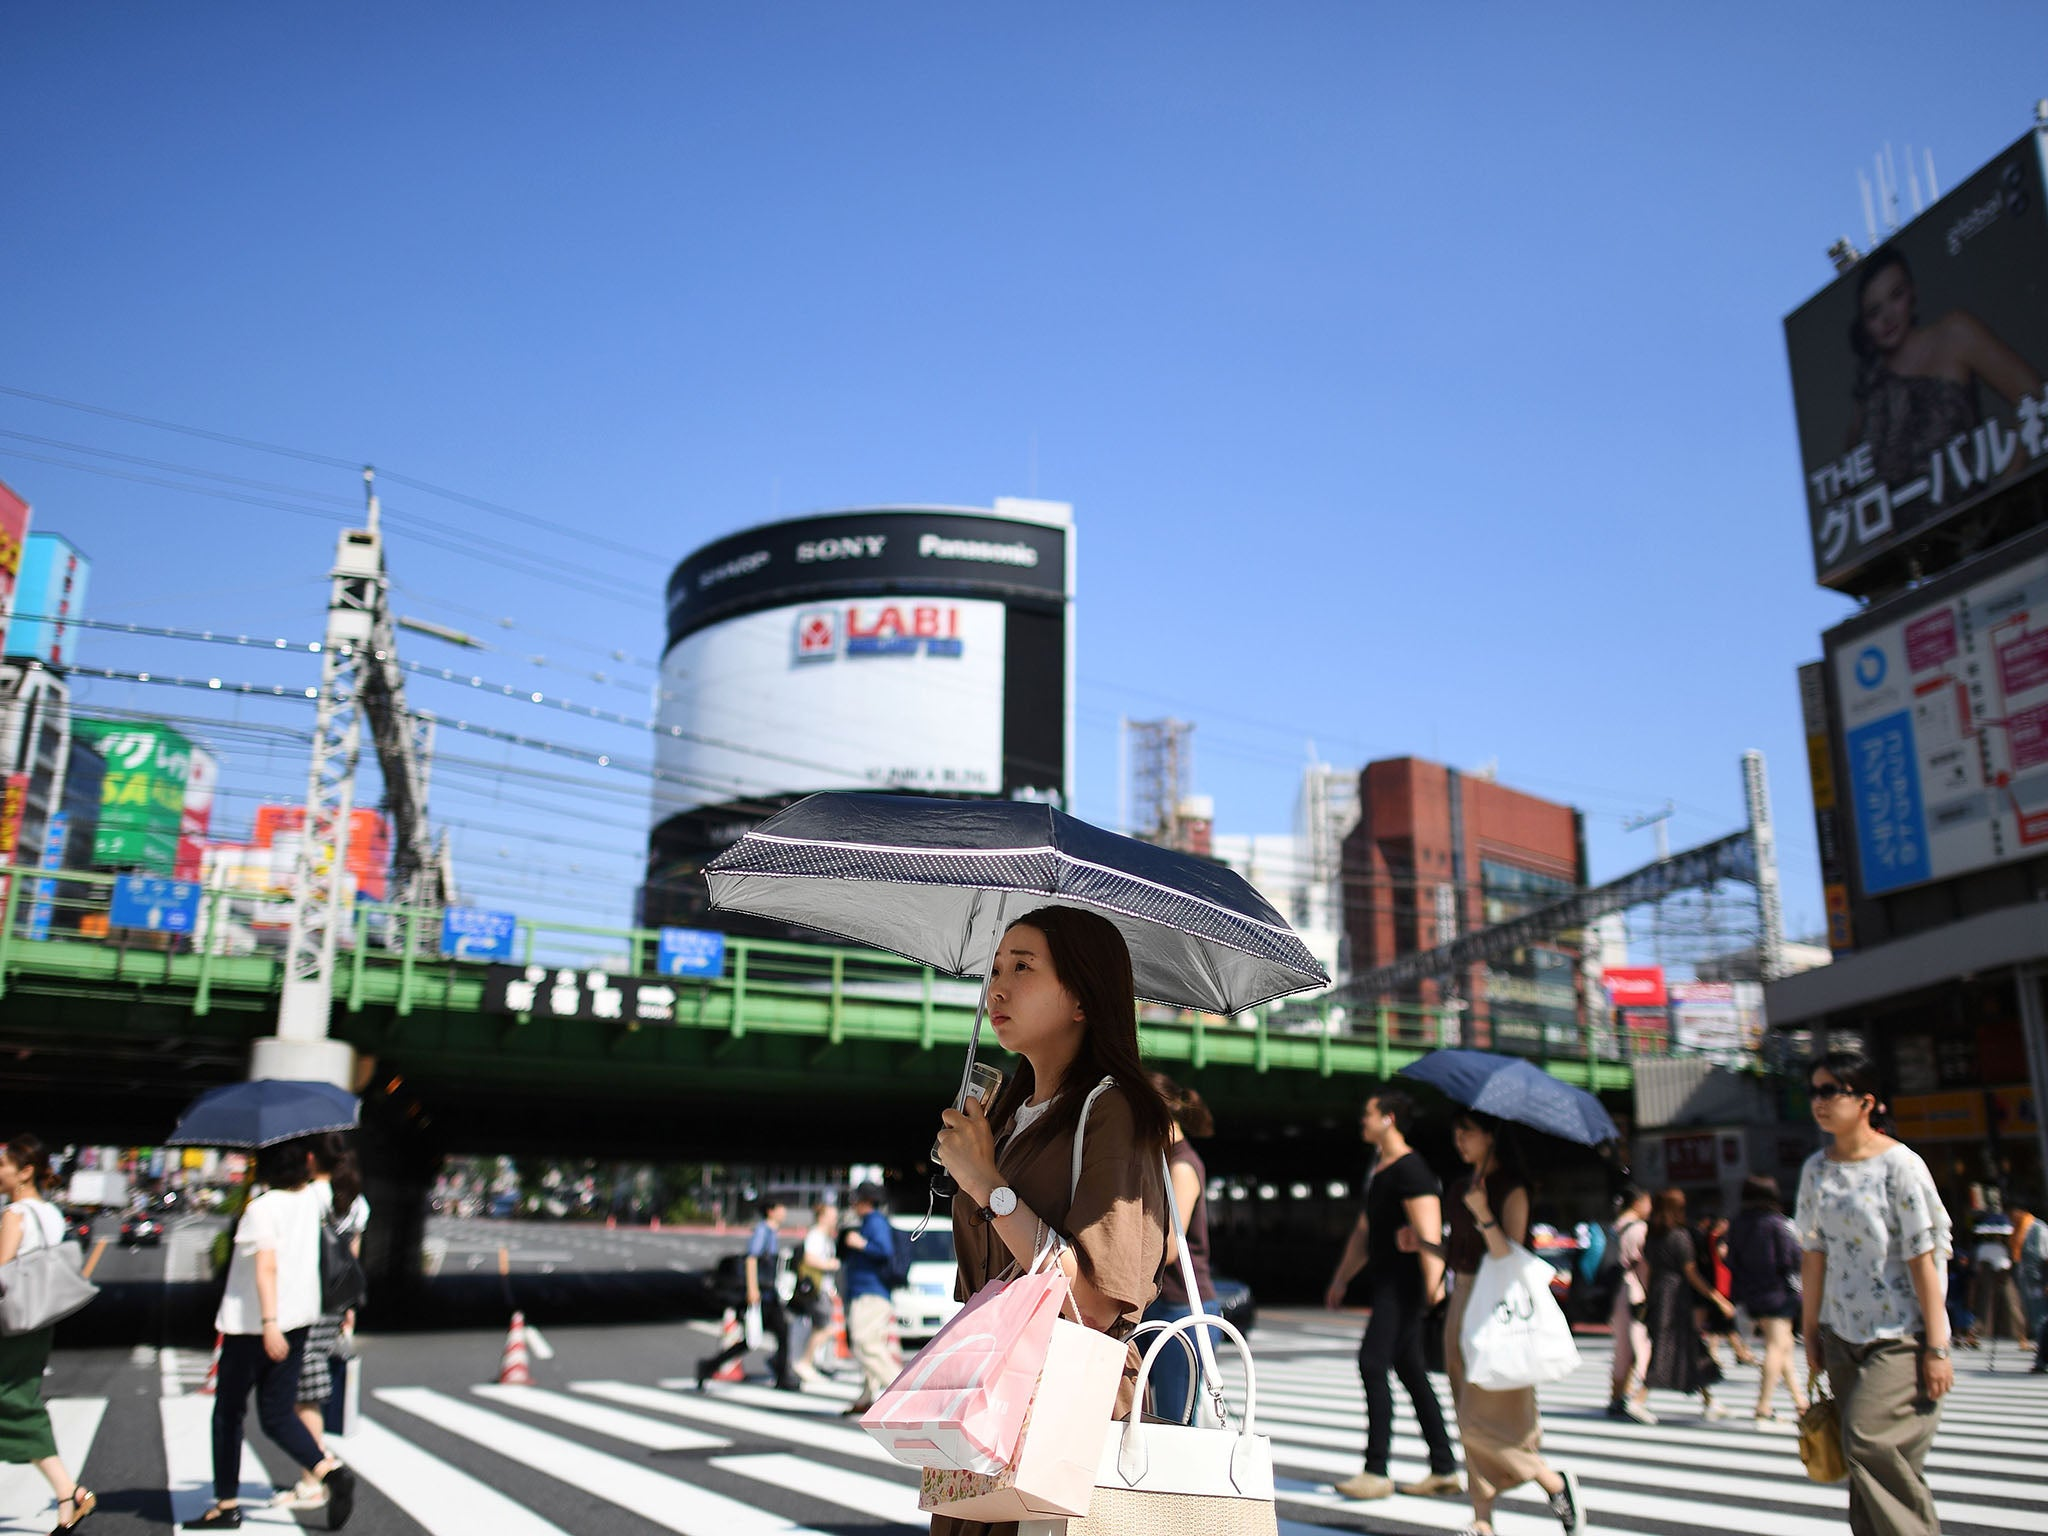 Going solo: The Japanese women rejecting marriage for the freedom of living single